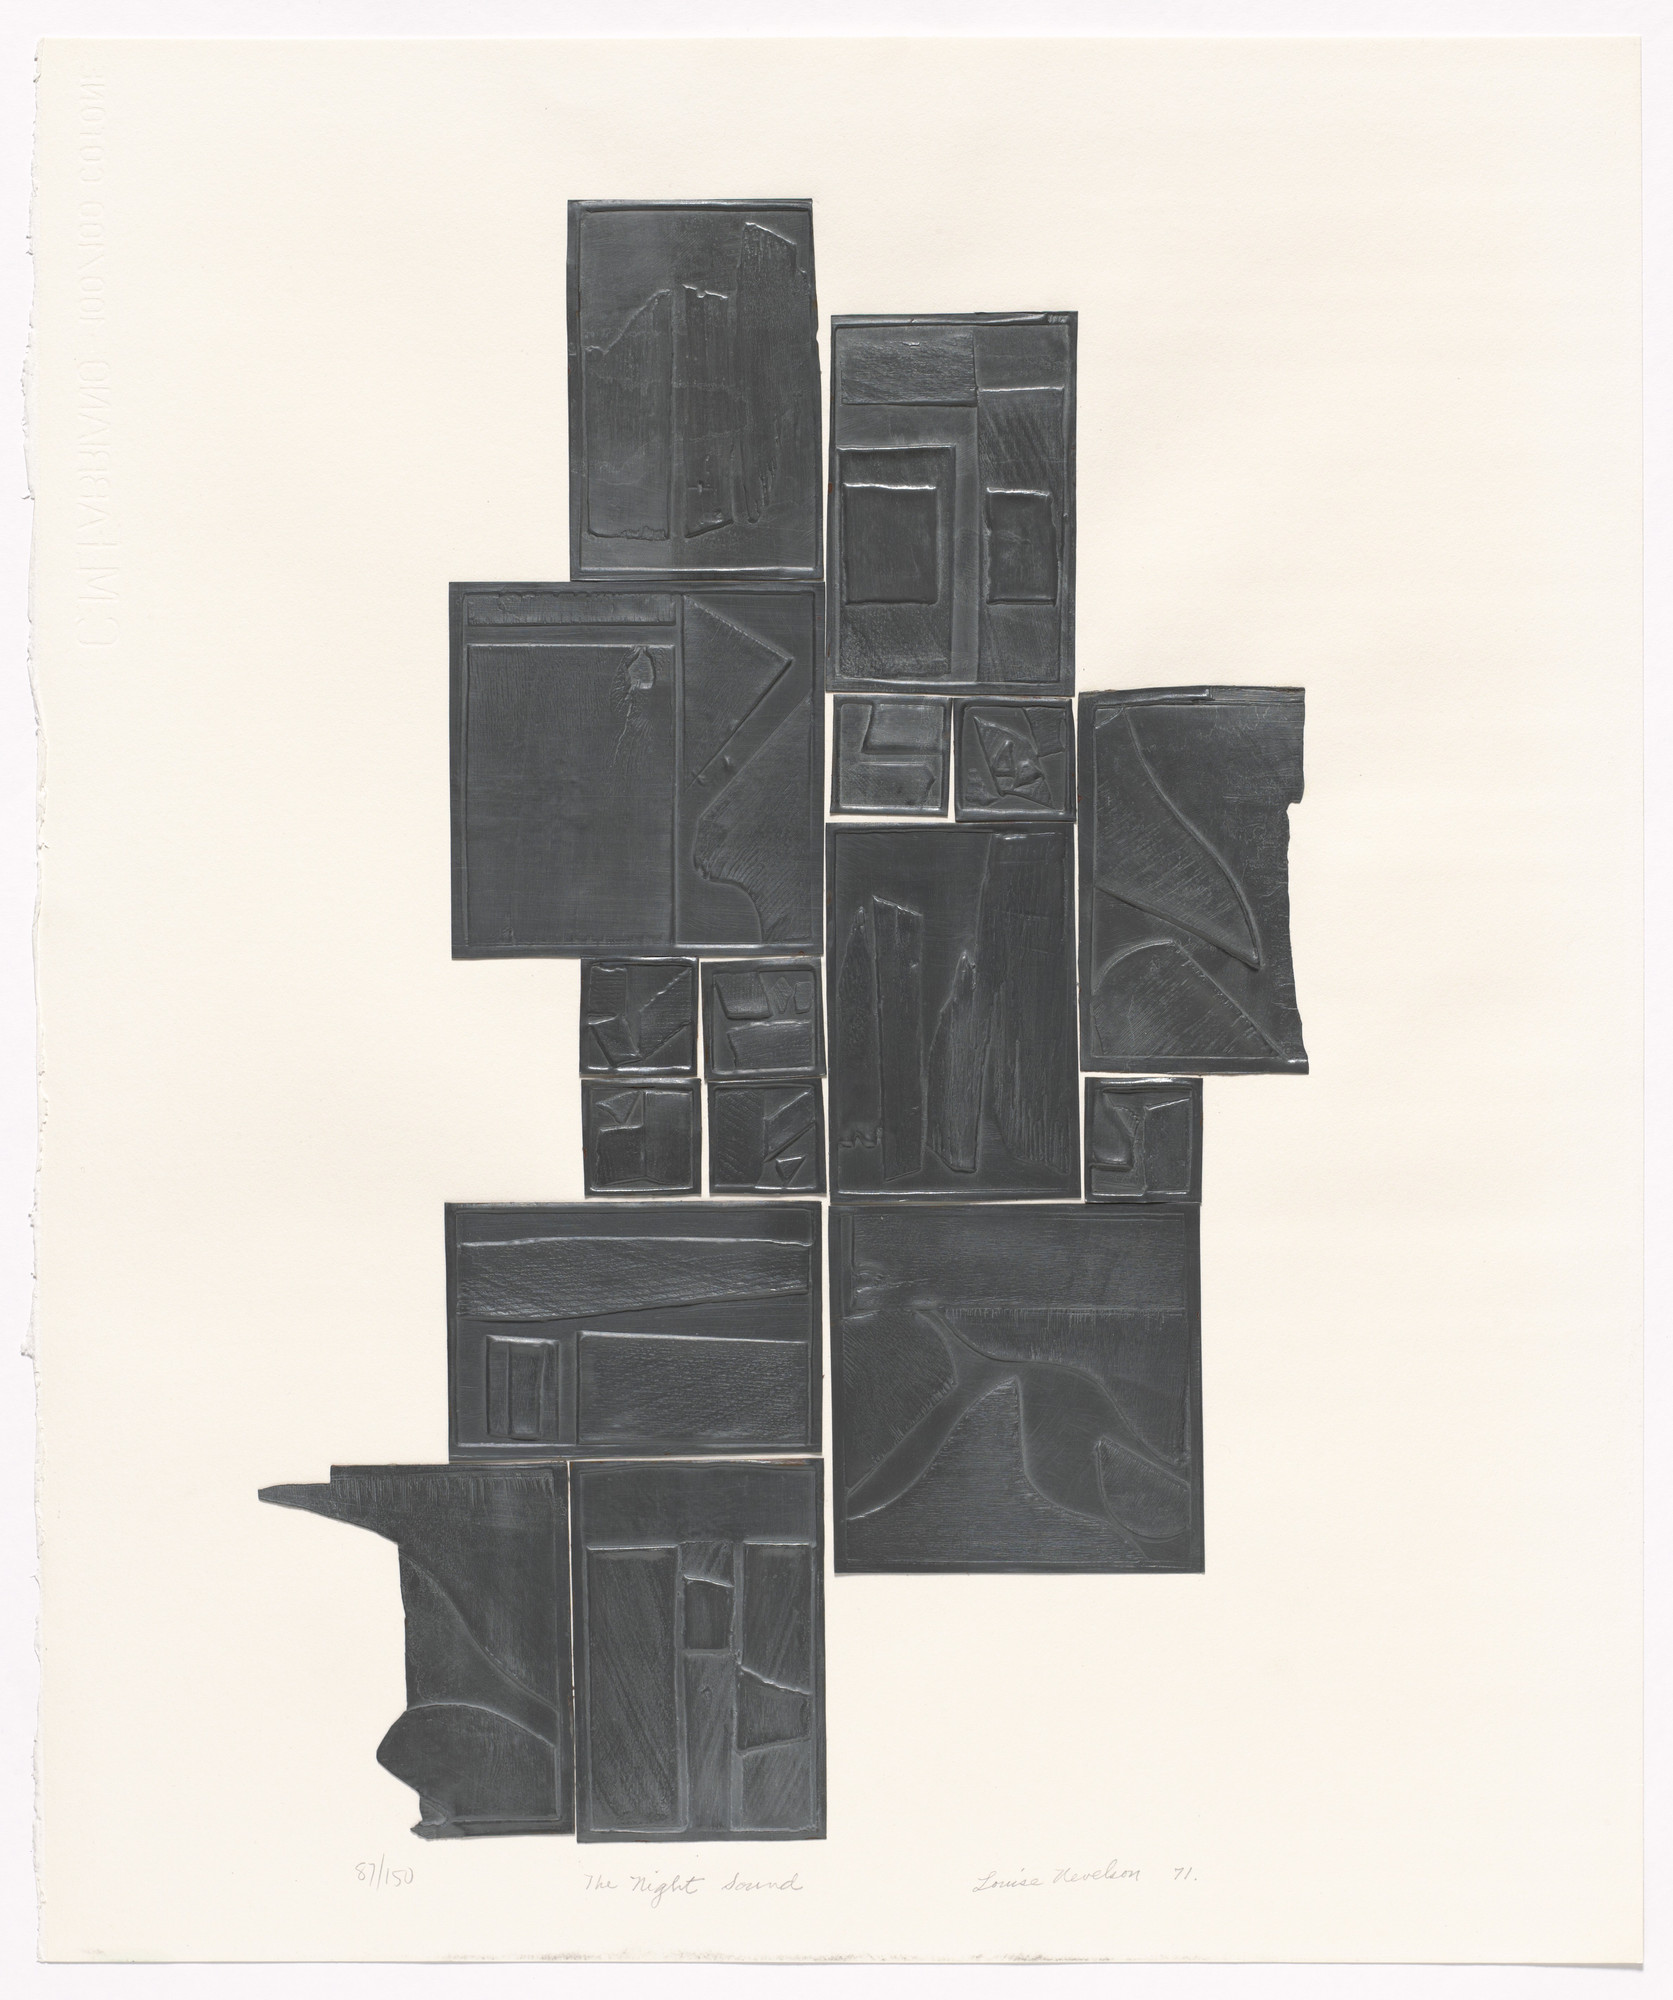 Louise Nevelson. The Night Sound. 1971